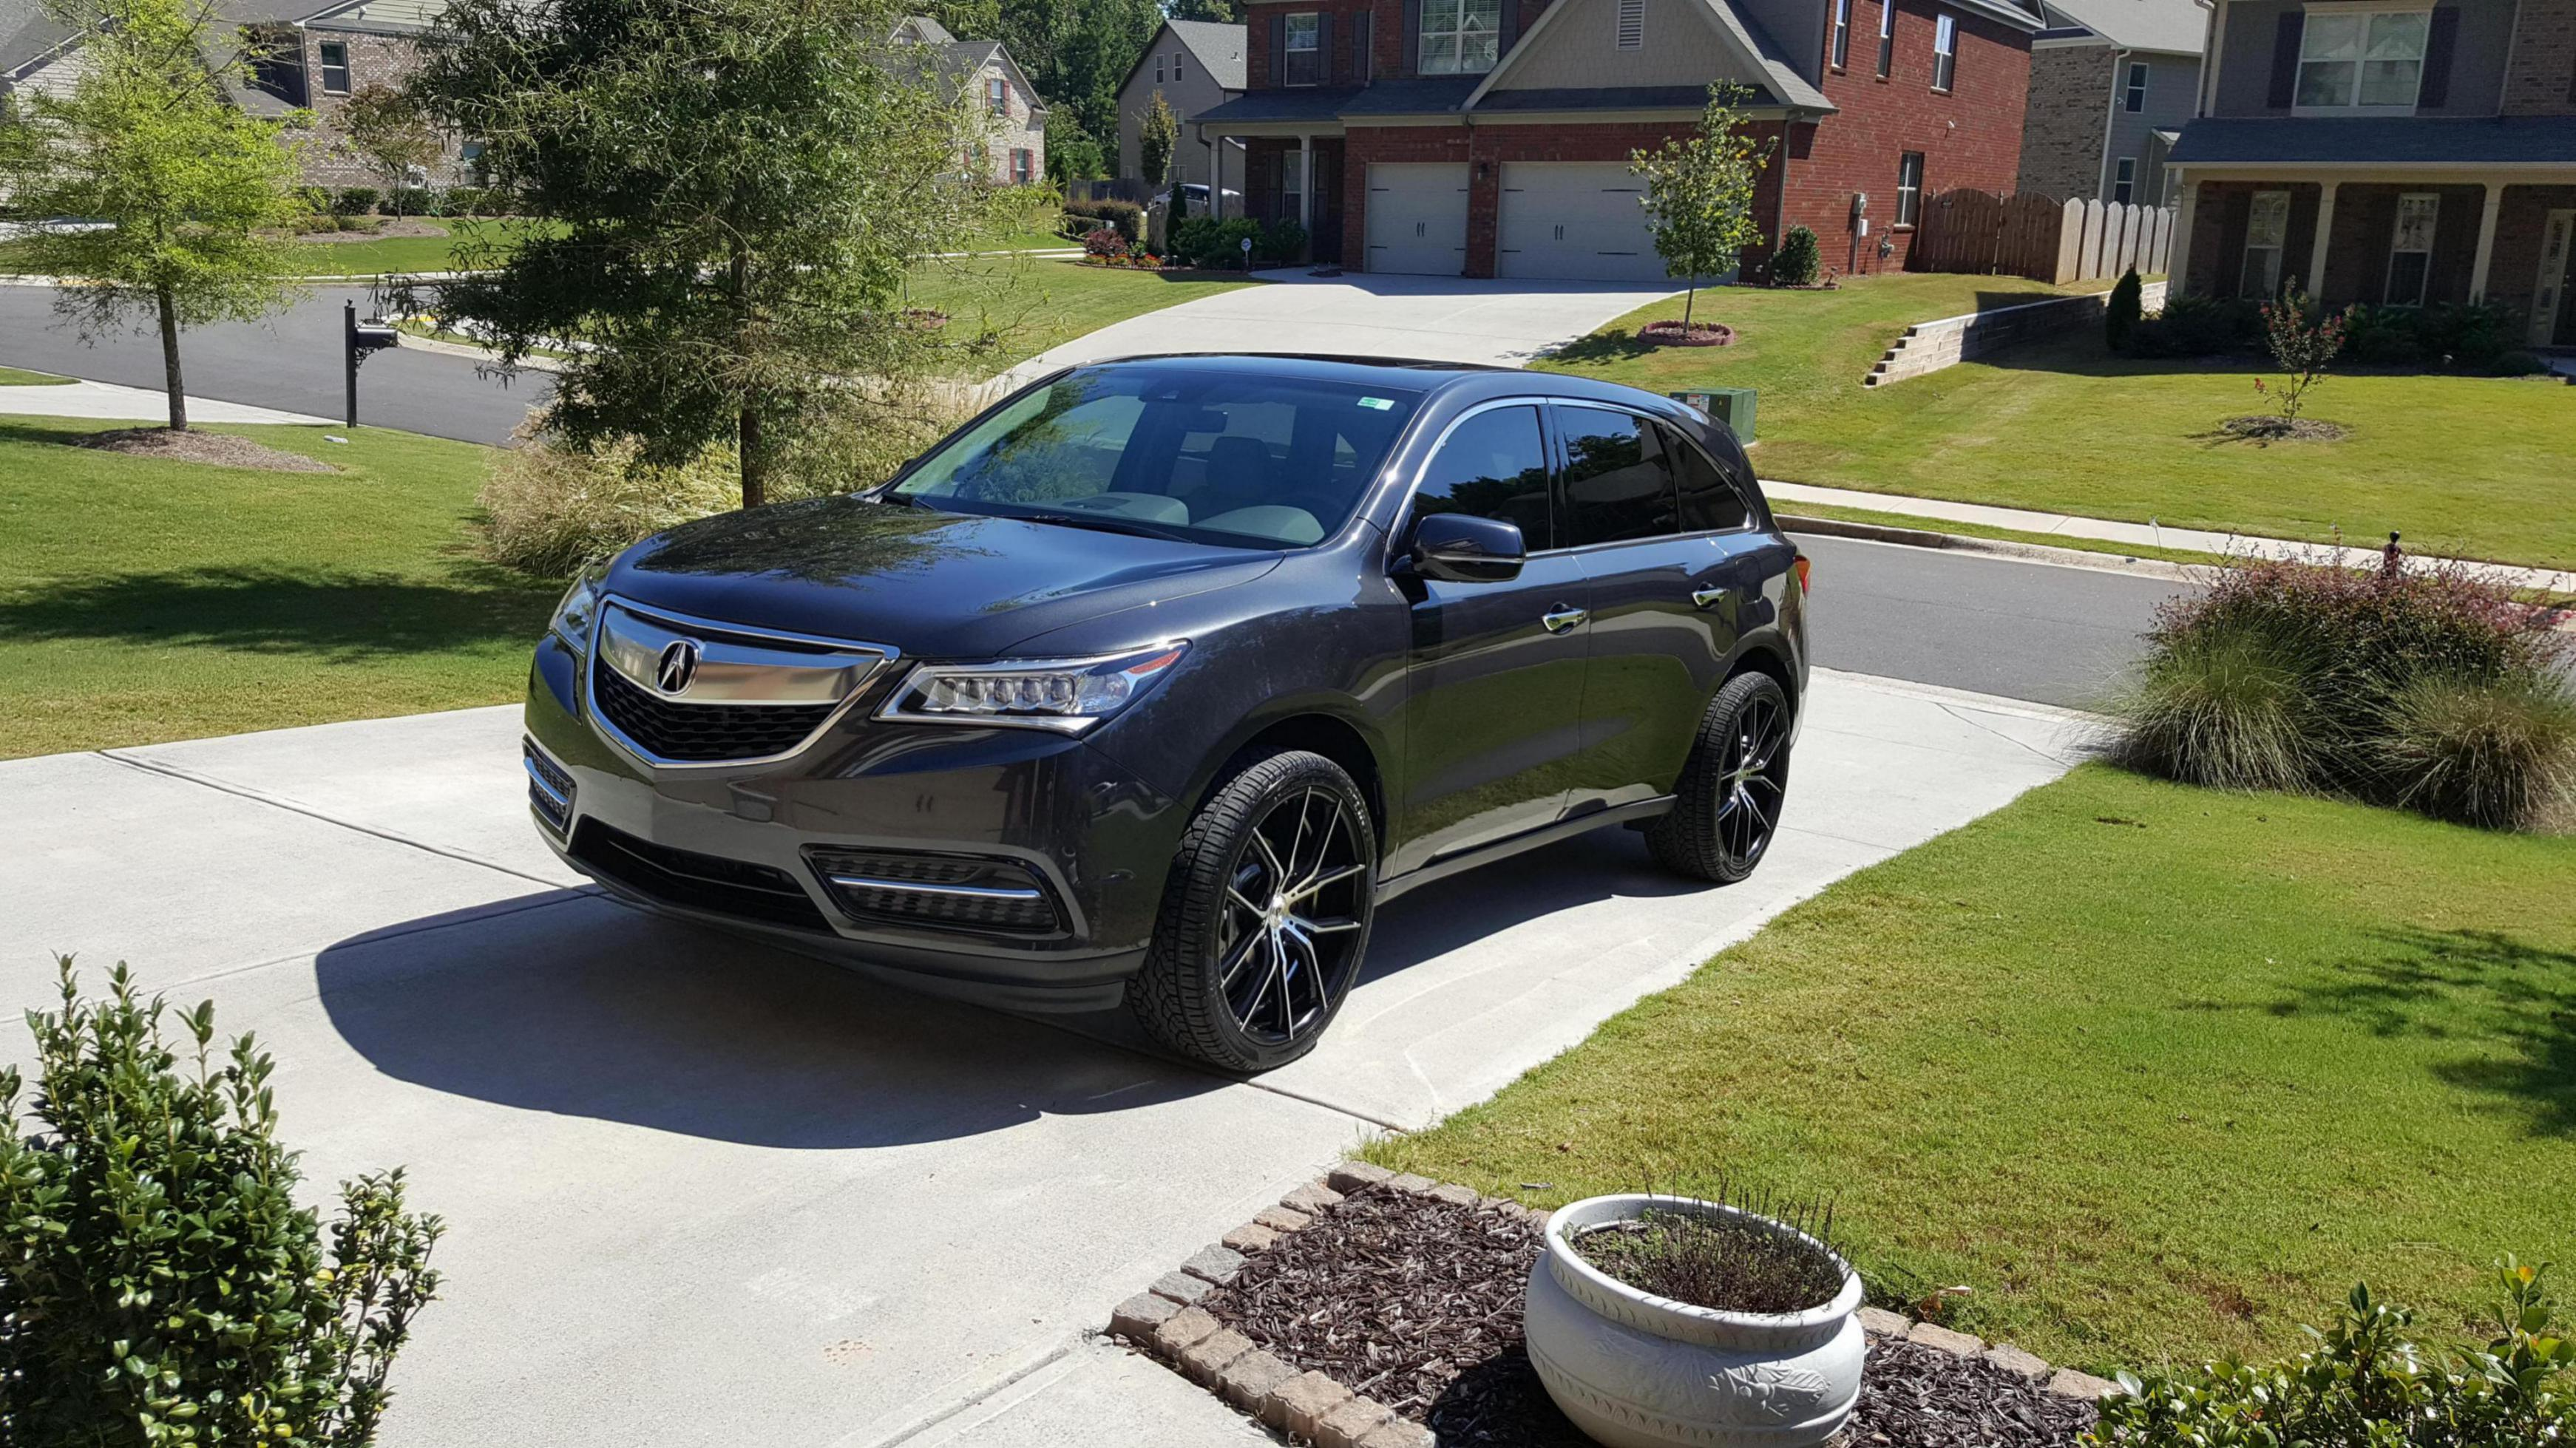 2016 Mdx With 22 Rims Acura Mdx Suv Forums